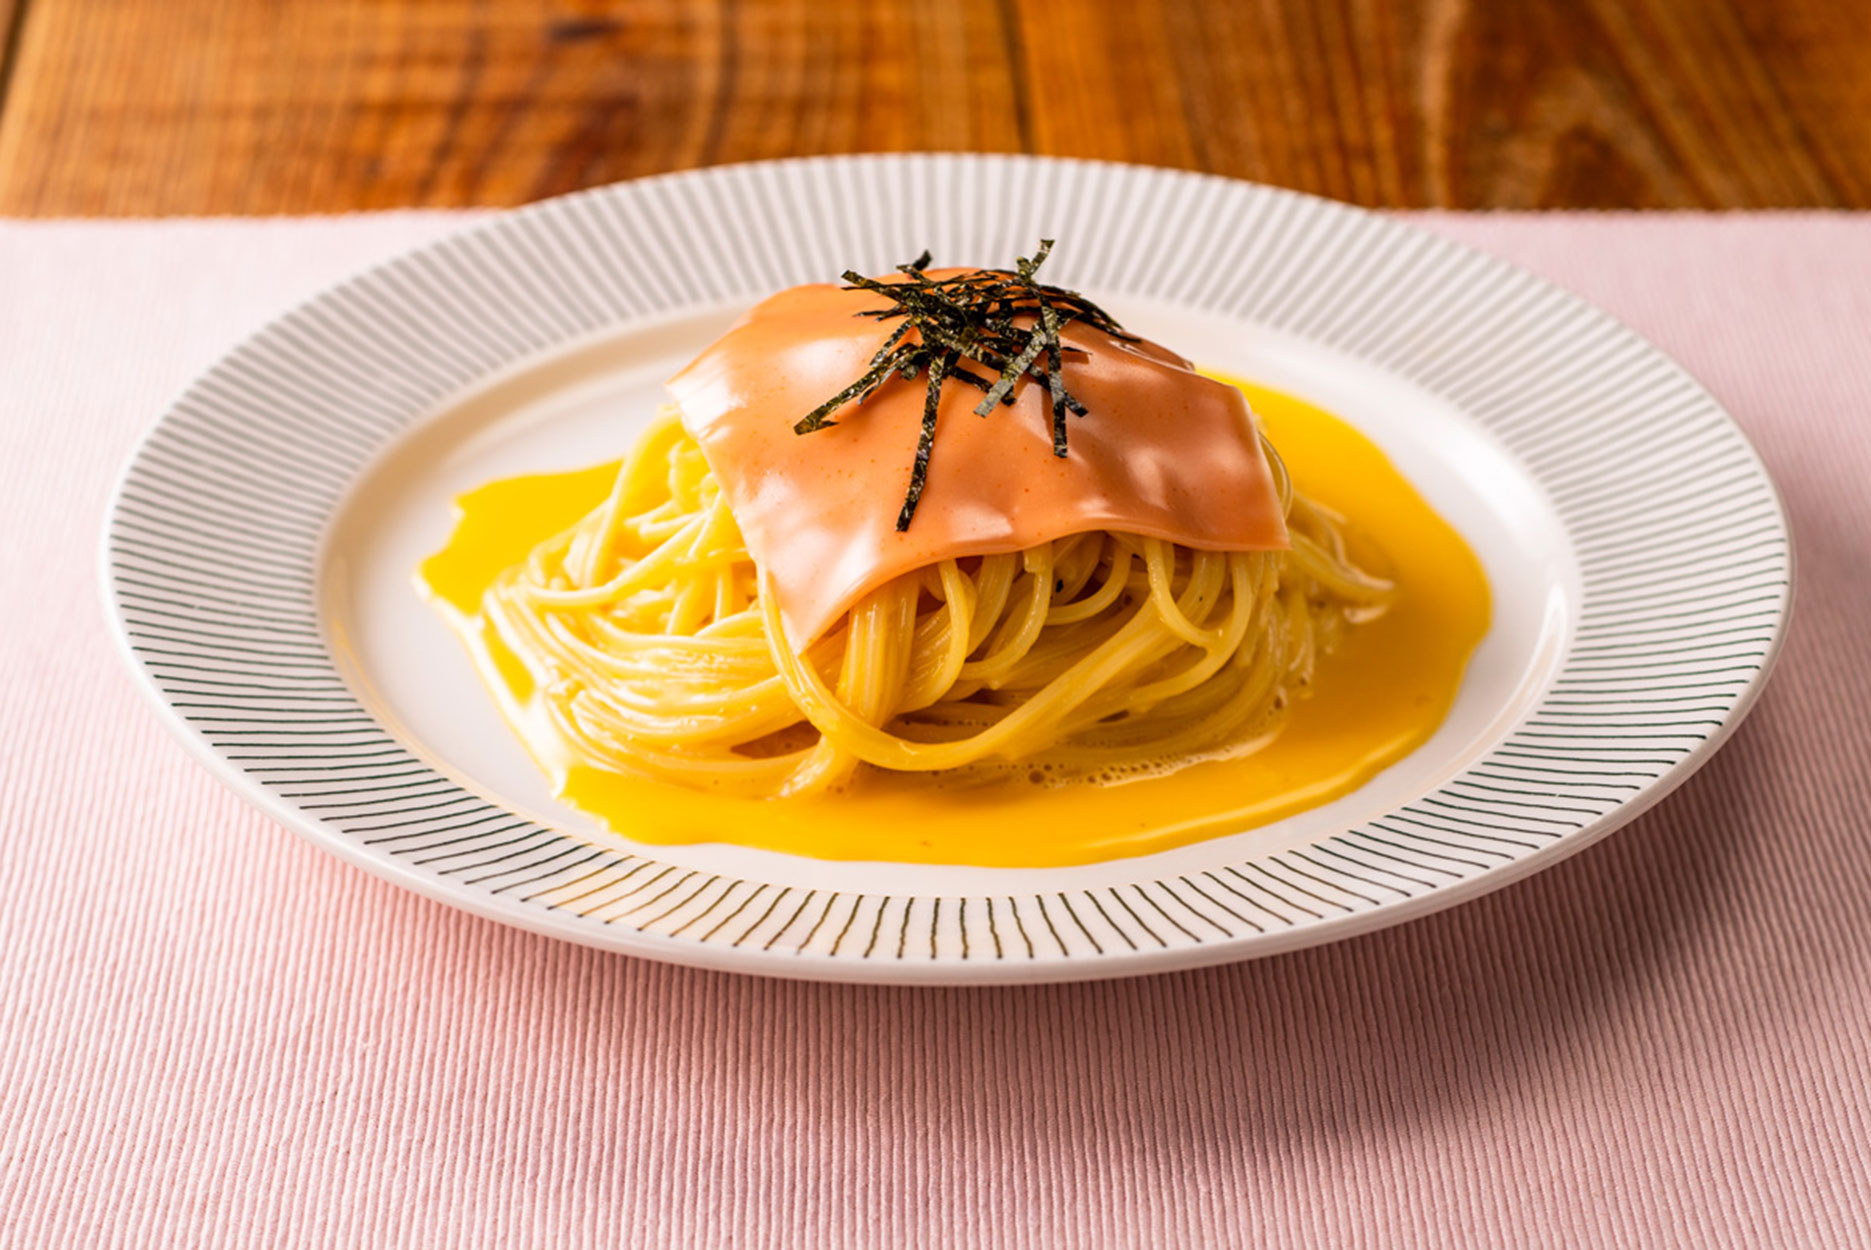 A serving suggestion of a mentaiko mayonnaise slice on noodles